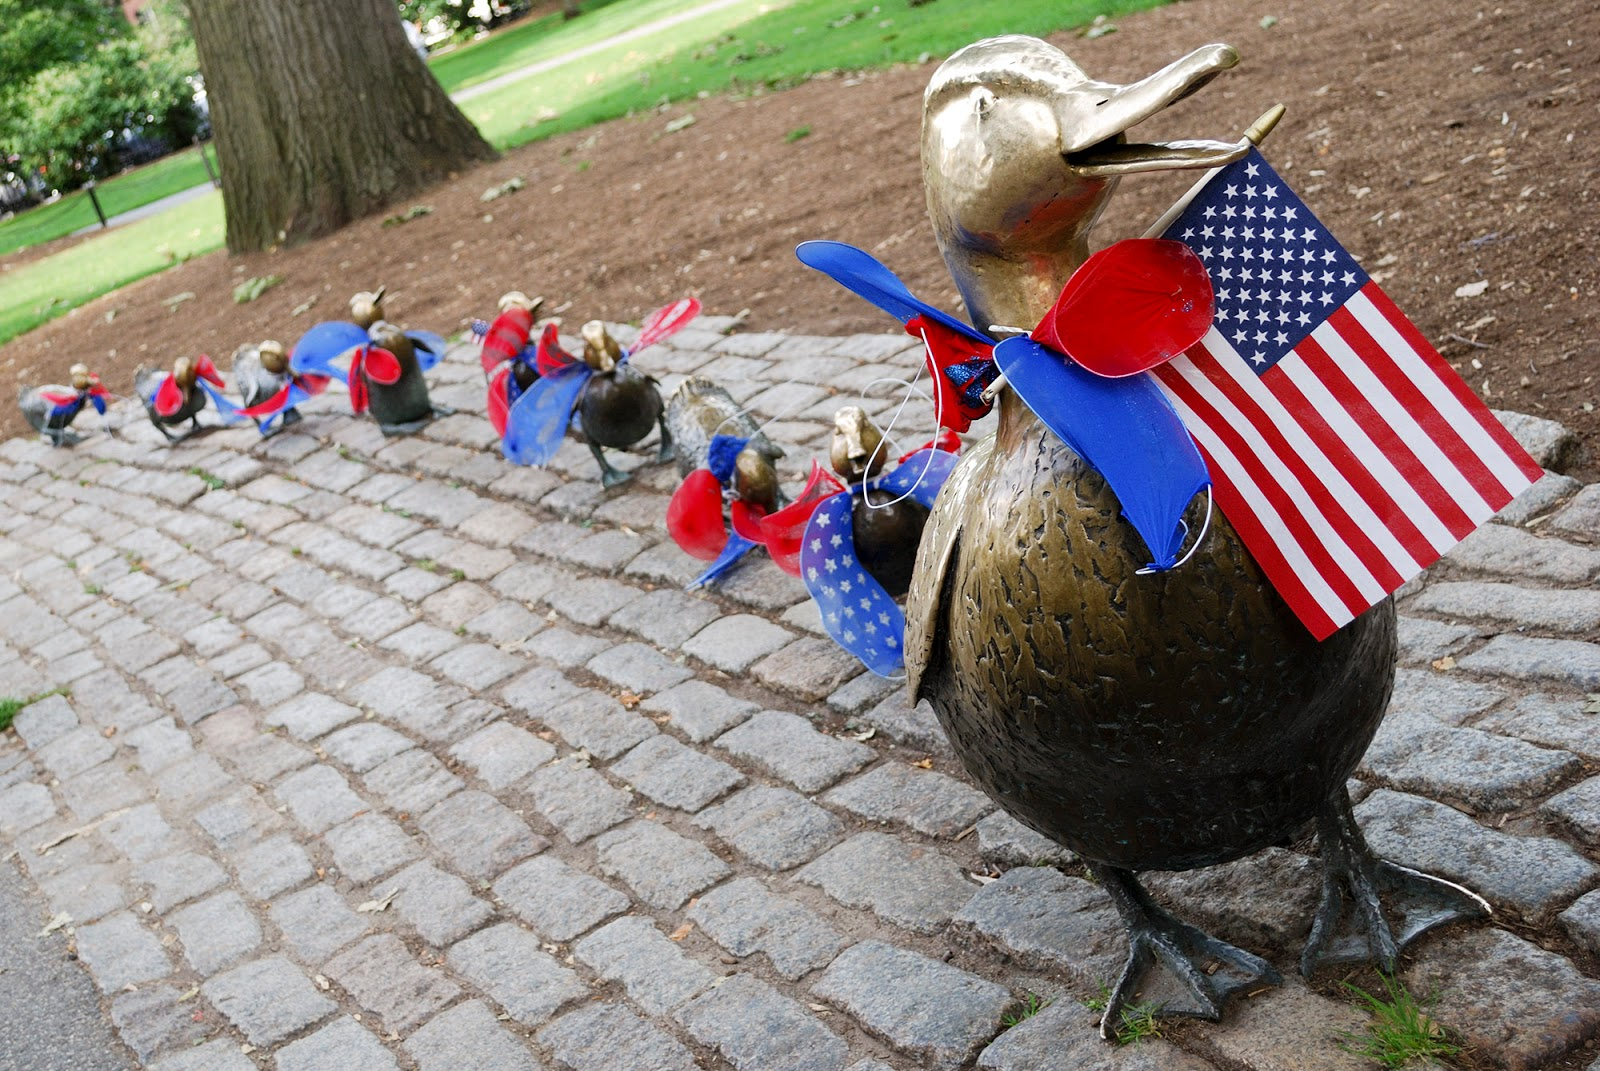 ducklings statue 4th july boston public garden itinerary plan guide tourism usa america park east coast